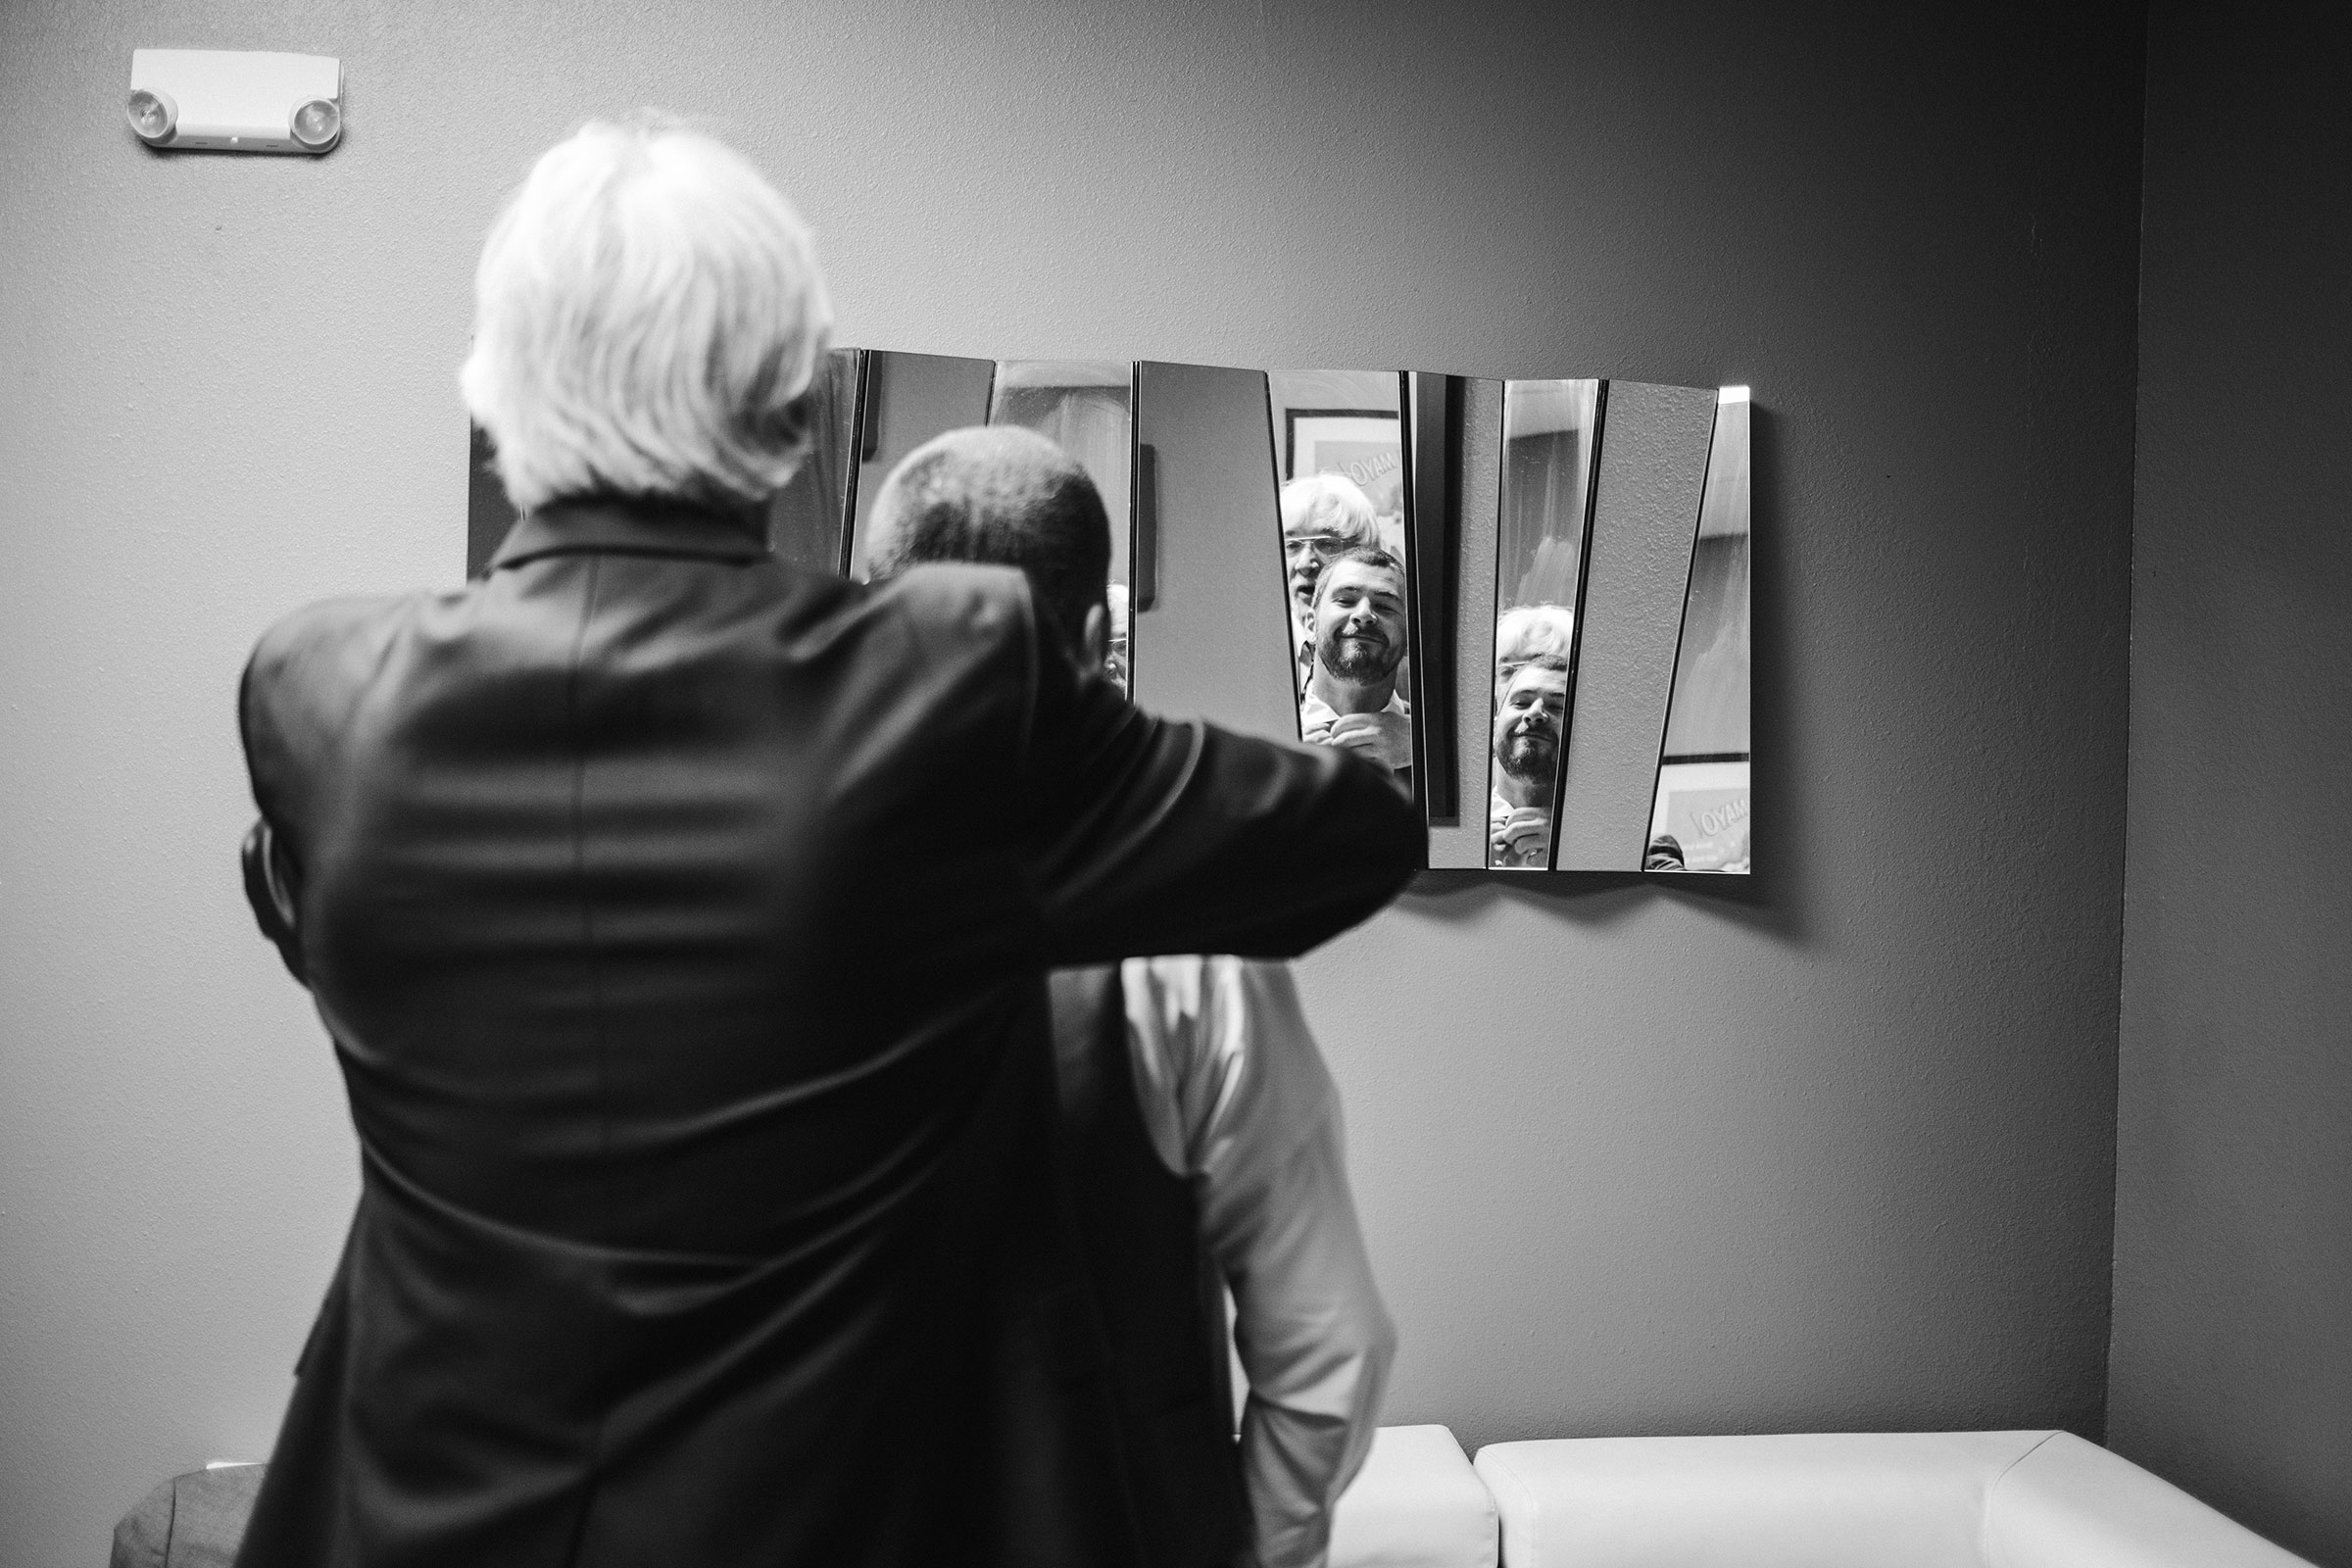 groom-father-helping-him-get-ready-decades-event-center-building-desmoines-iowa-raelyn-ramey-photography..jpg